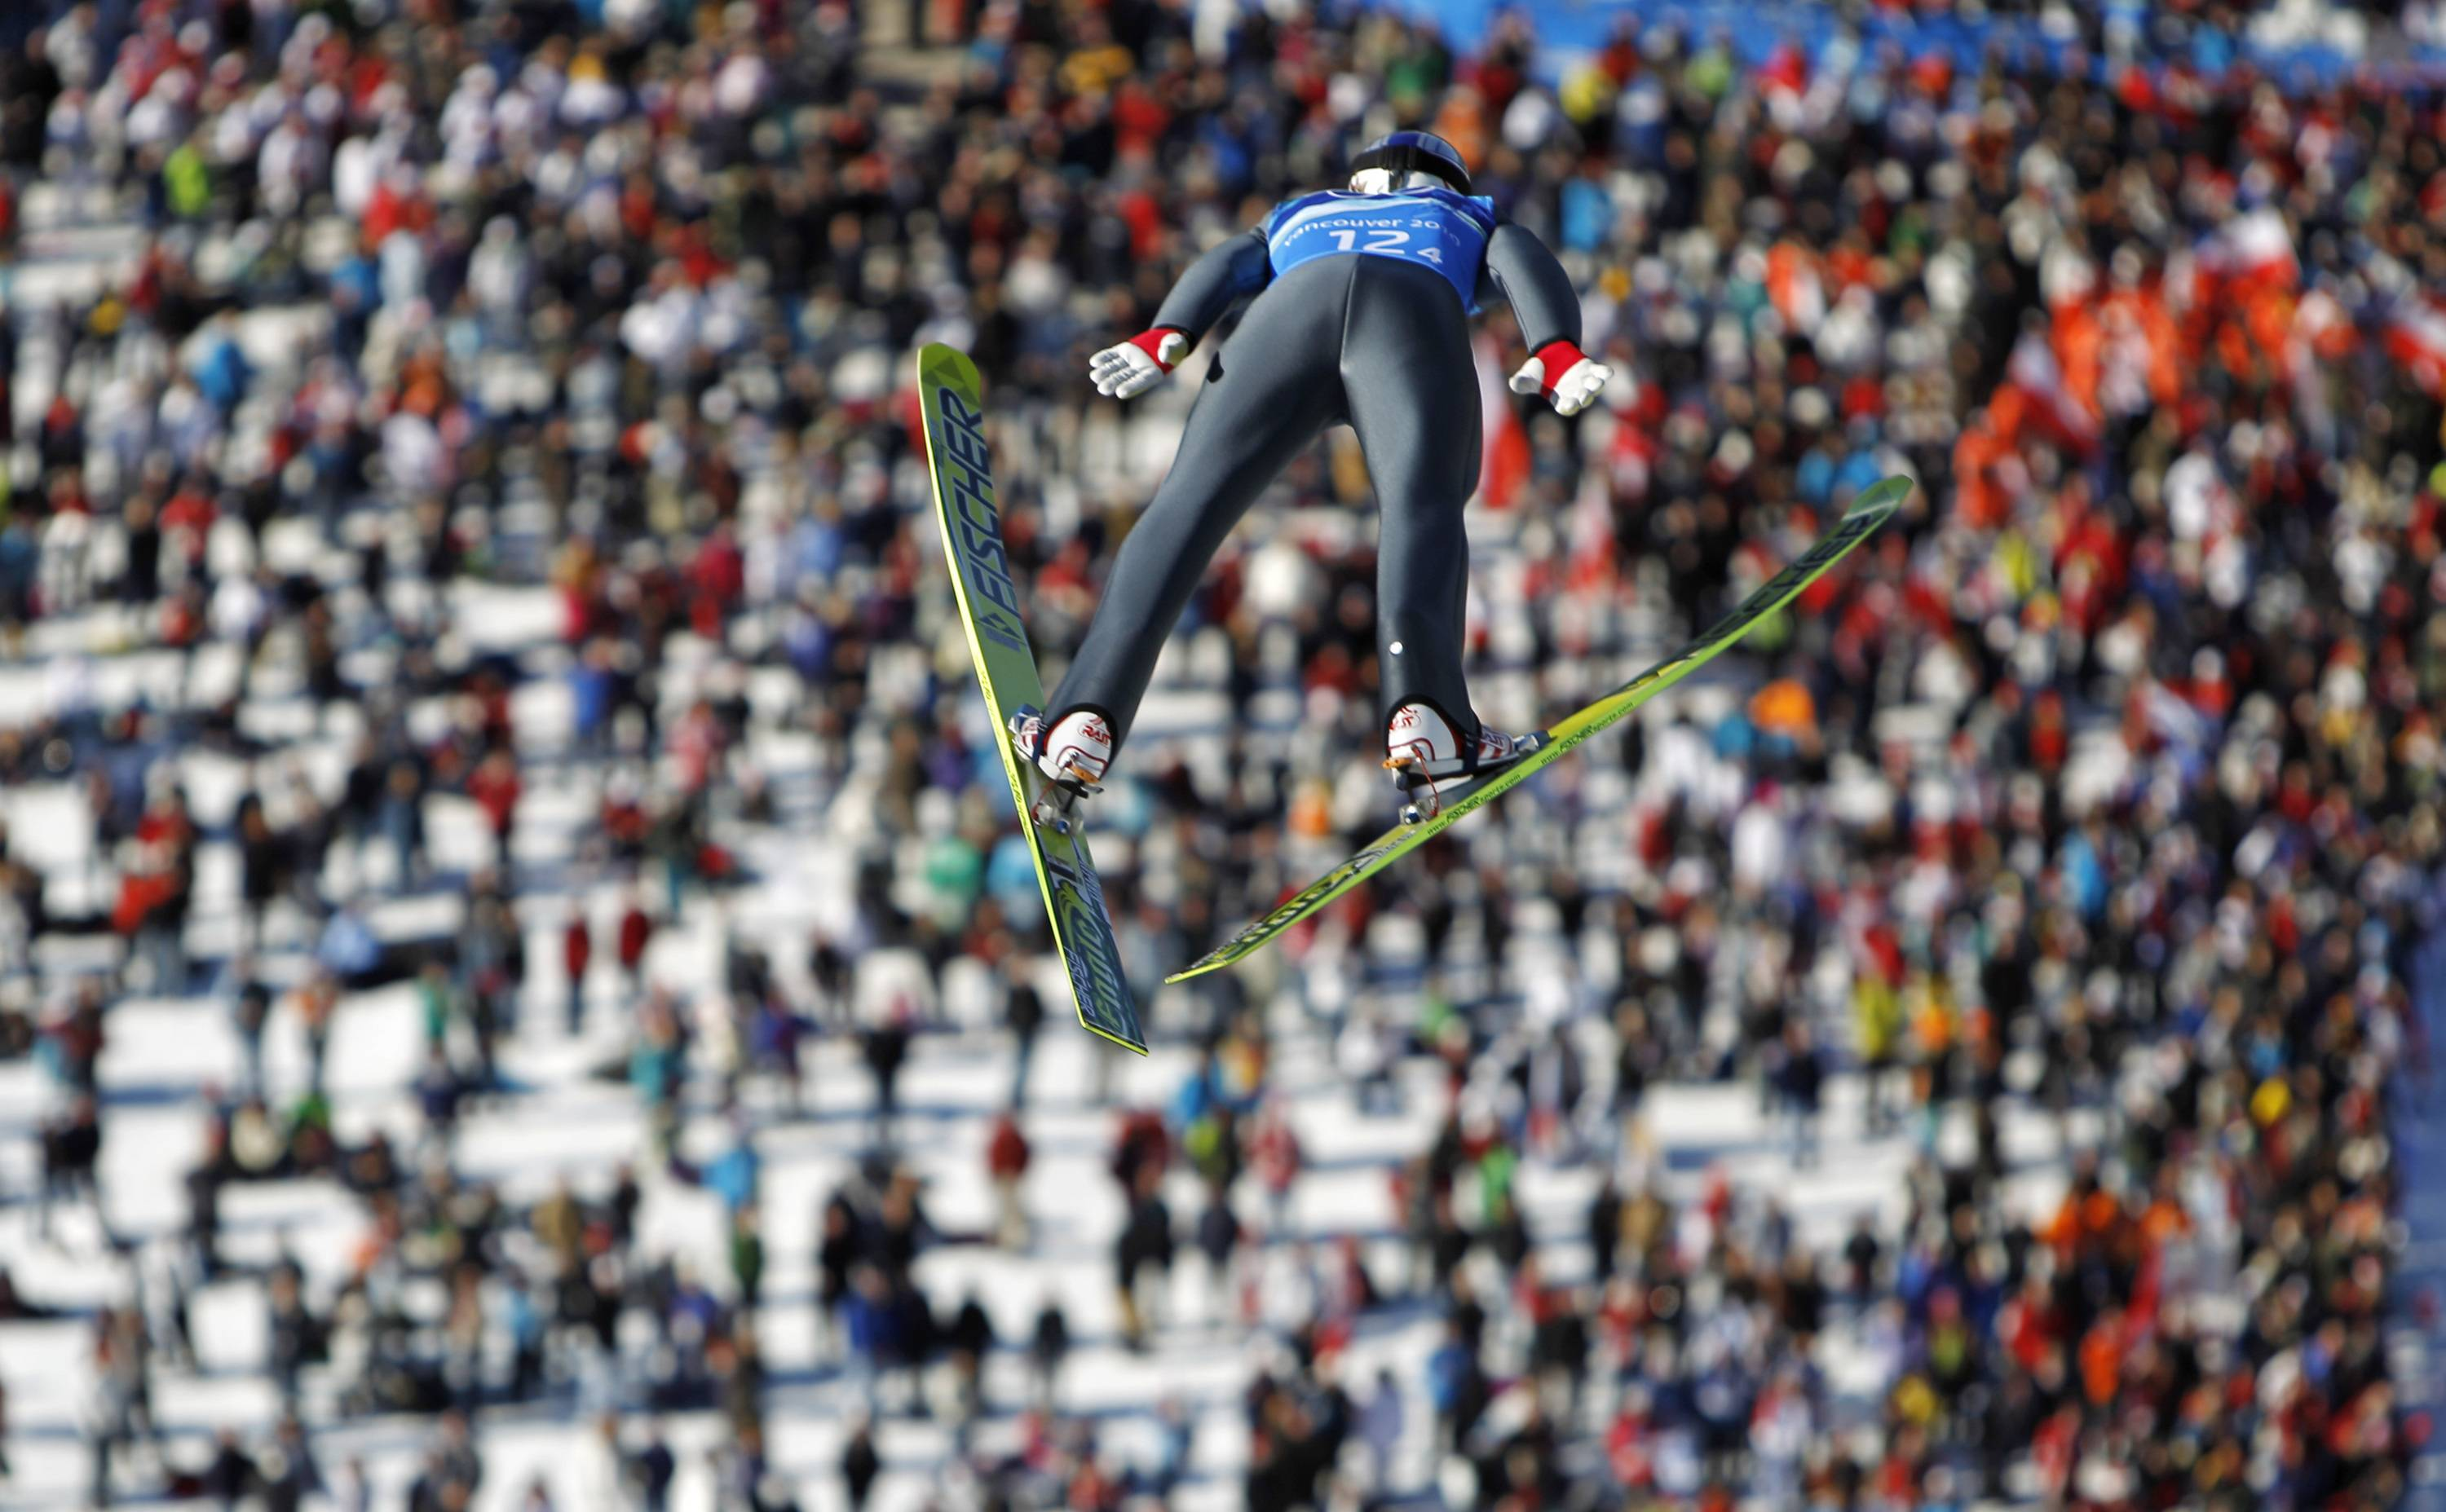 Austria's Gregor Schlierenzauer makes his first competition jump during the Men's ski jumping team event from the large hill.